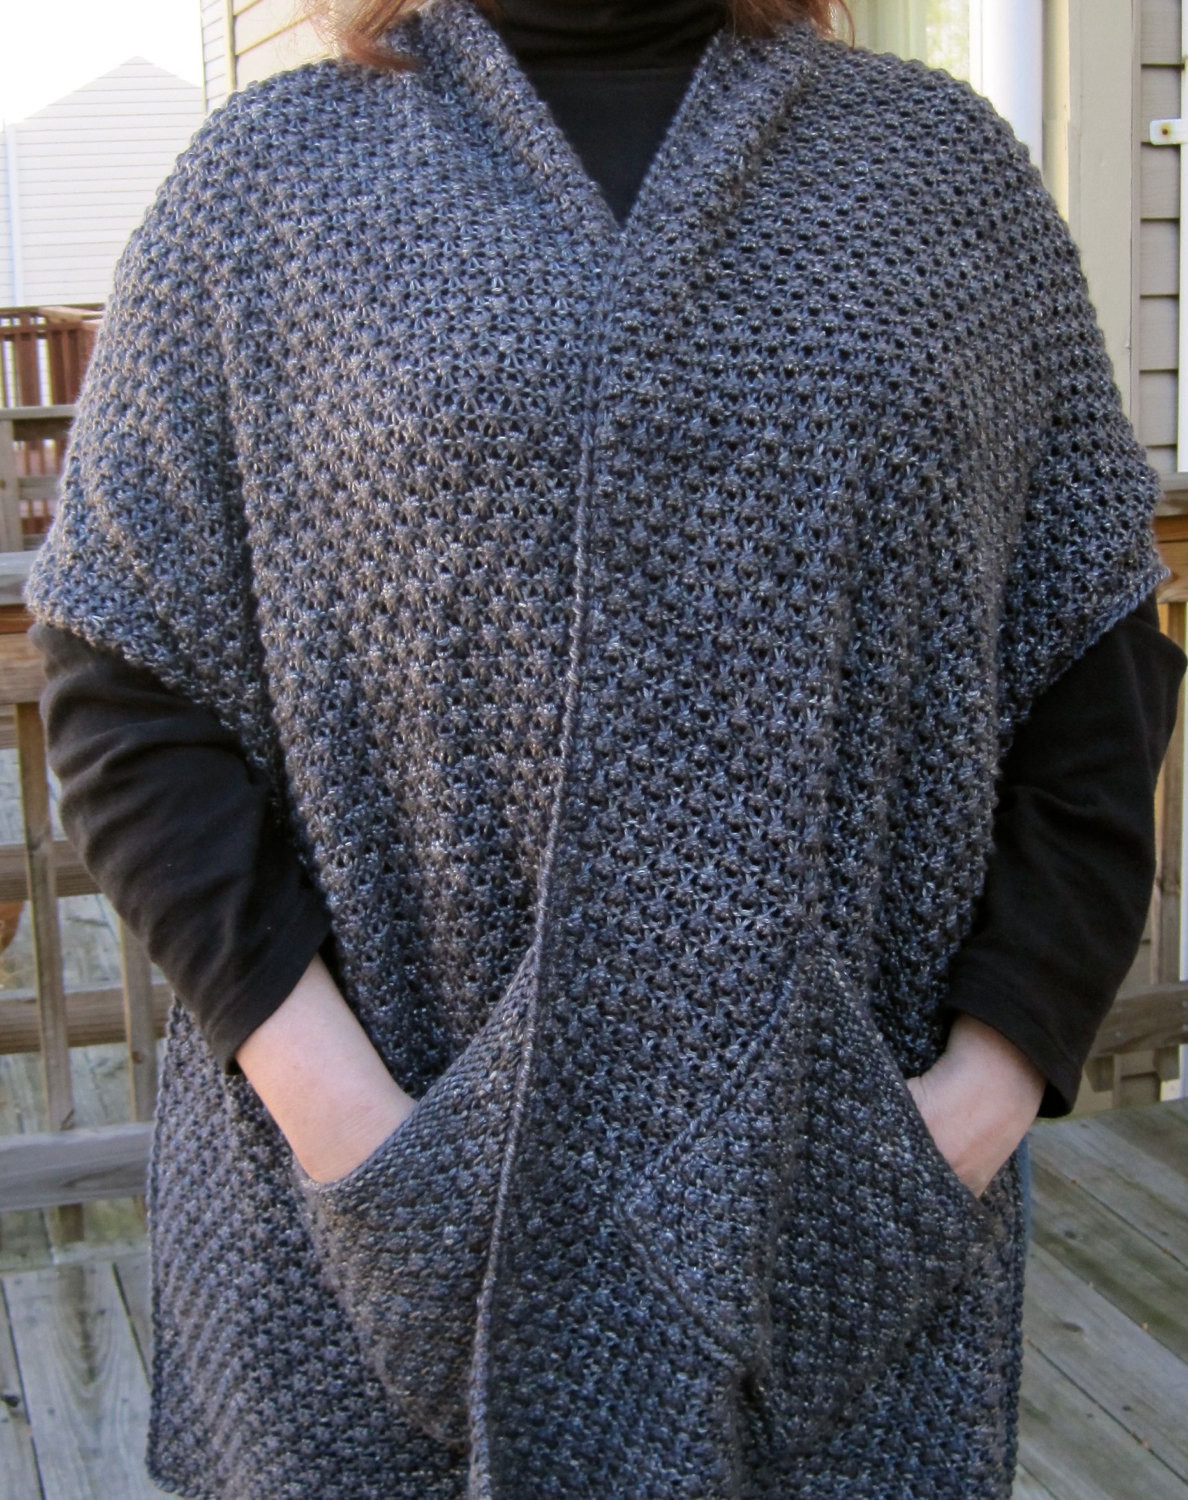 Luxury Pocket Wrap Knitting Patterns Knitted Shawl Wrap Of Superb 49 Images Knitted Shawl Wrap